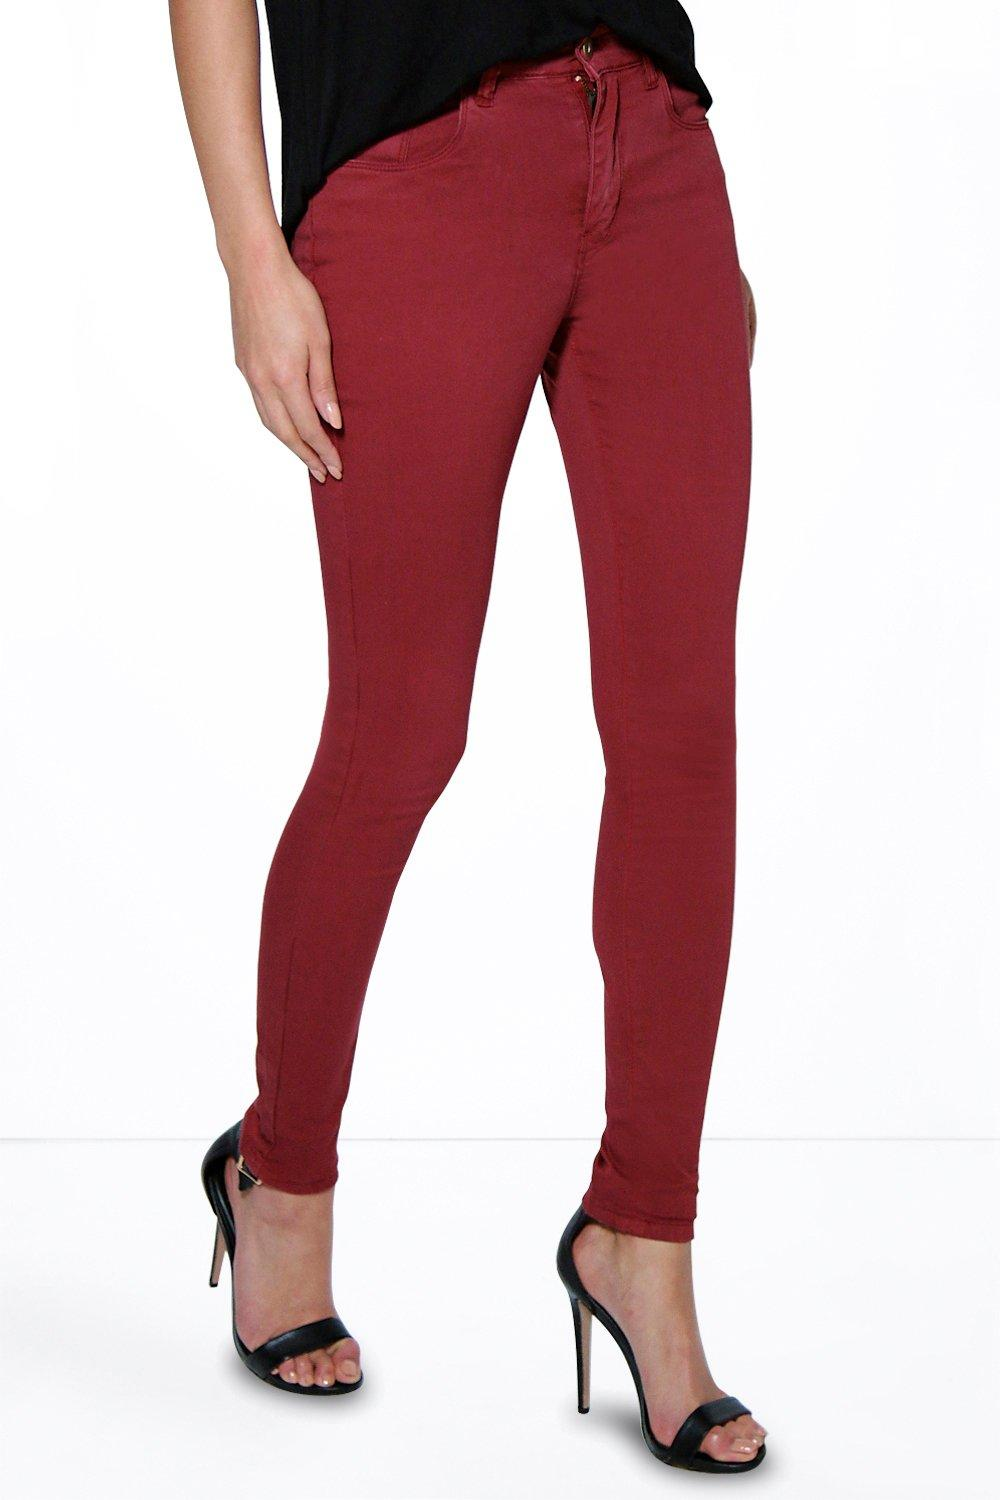 Kellie 5 Pkt High Rise Supersoft Skinny Jeans